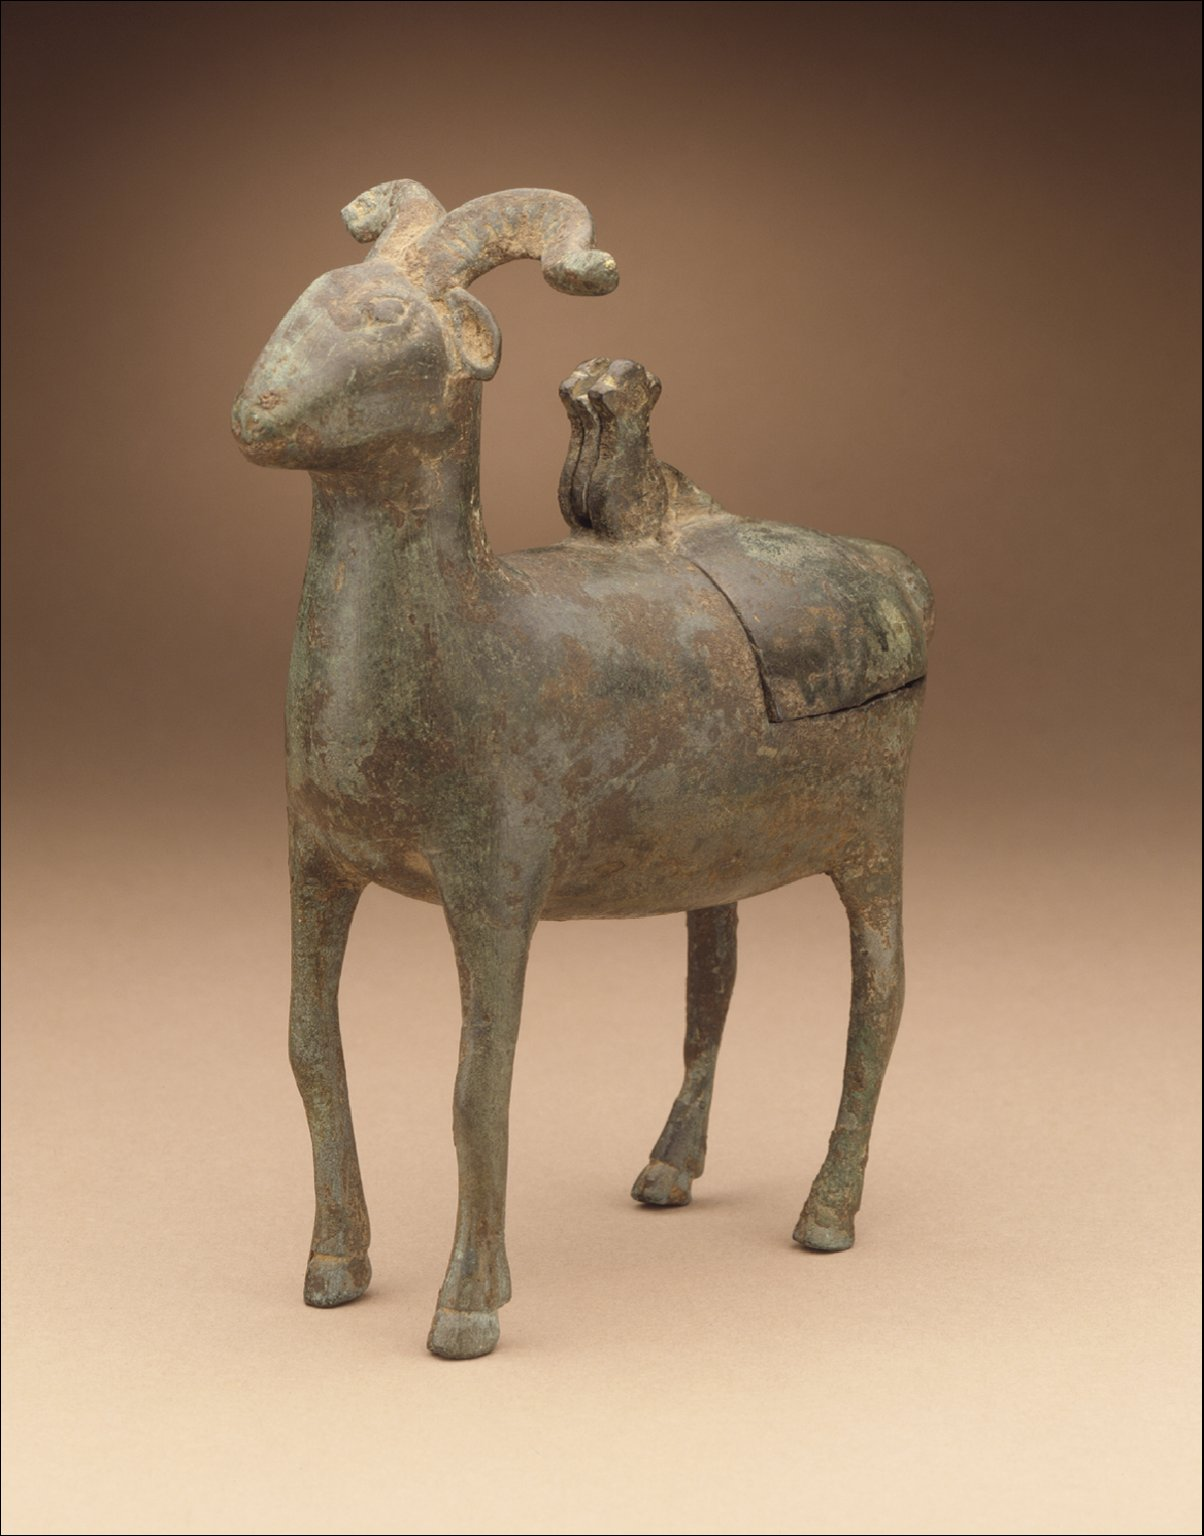 Lamp (Deng) in the Form of a Ram